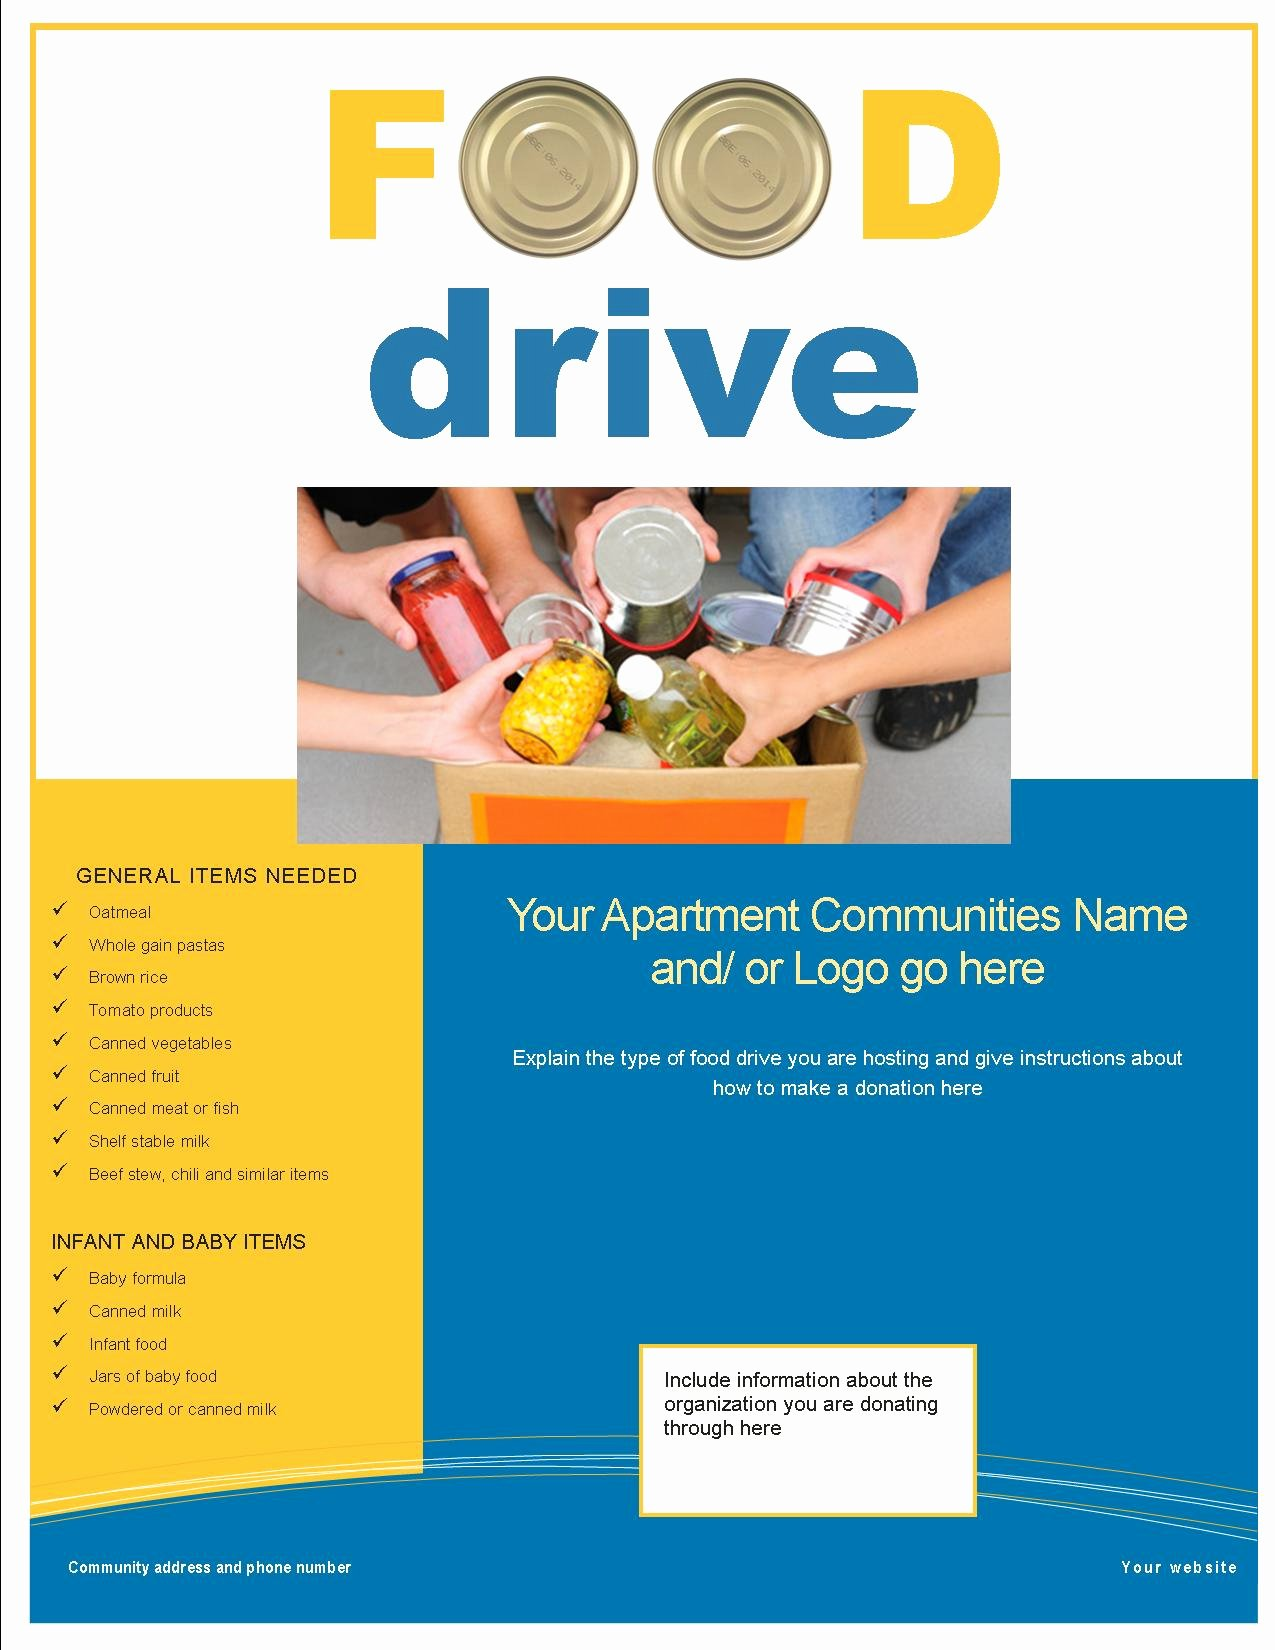 Food Drive Flyer Template Awesome 3 Great Feel Good Resident Activities